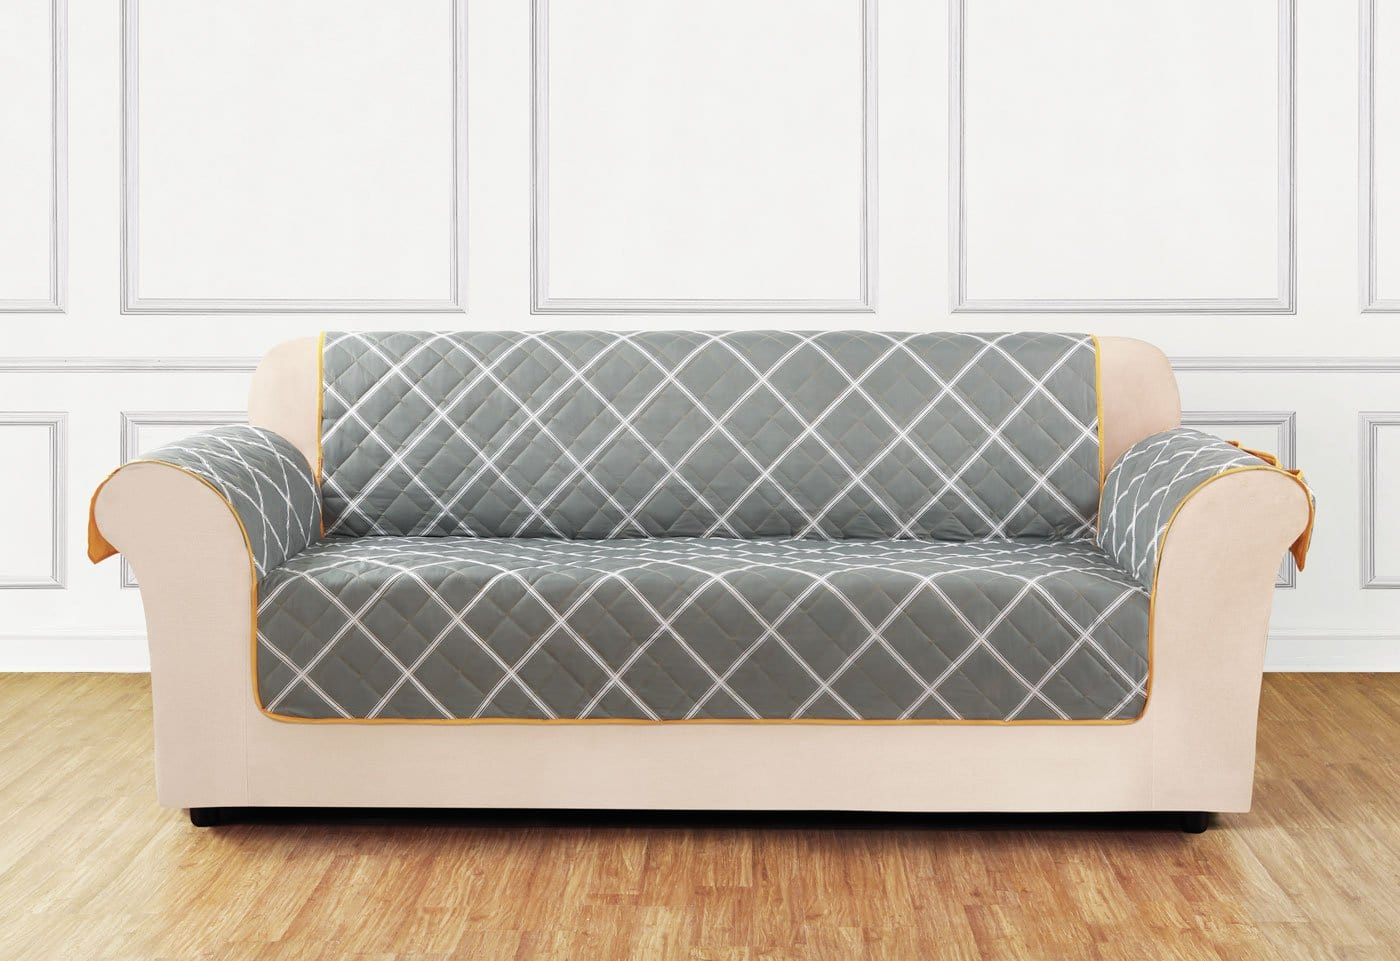 Furniture Flair Loveseat Furniture Cover 100% Polyester Pet Furniture Cover Machine Washable - Loveseat / Outline Lattice - Dark Gray